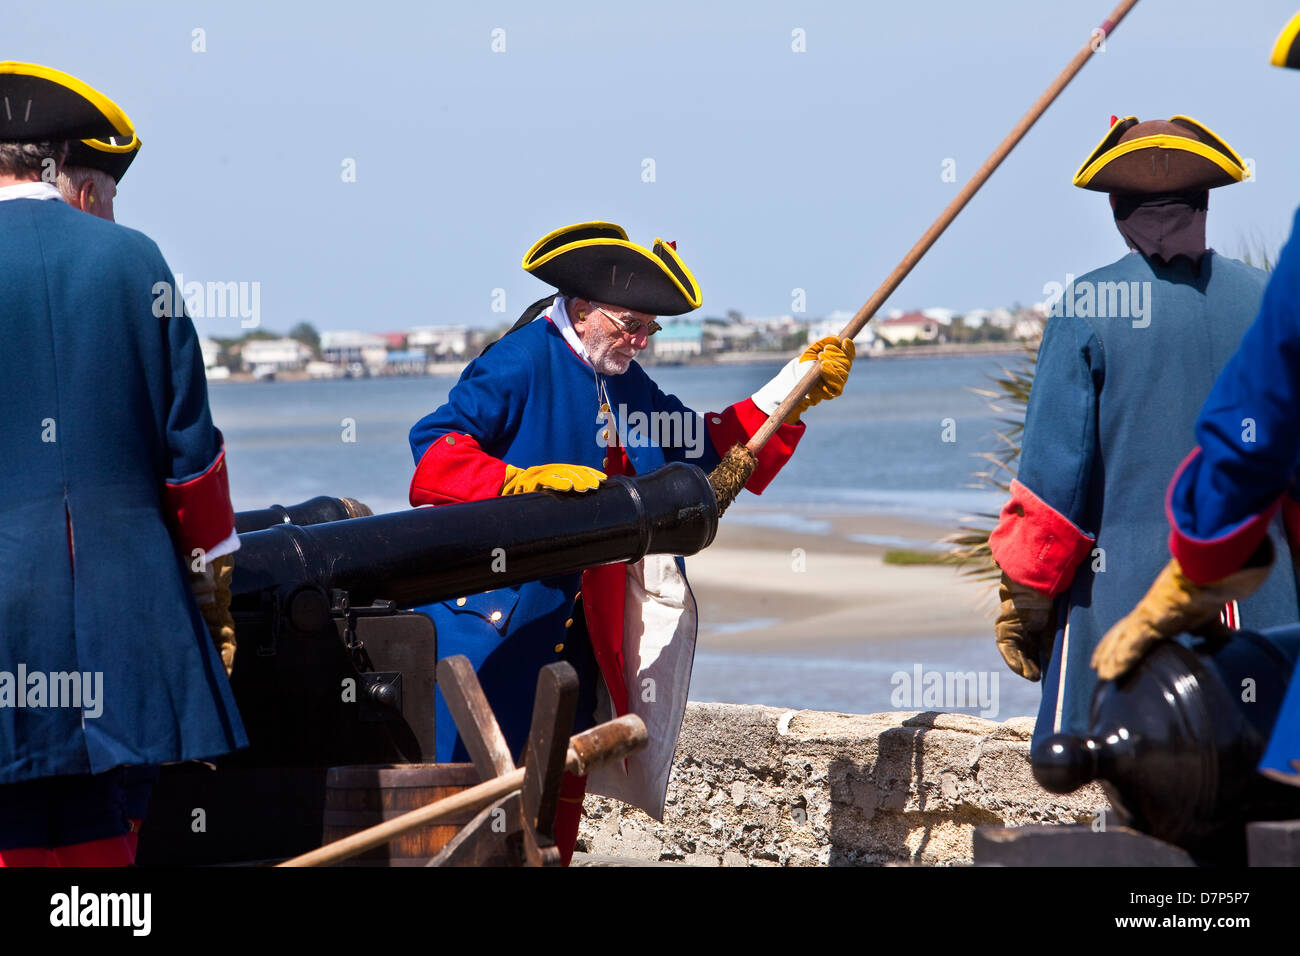 Reenactors operate a canon at the Castillo de San Marcos Fort in St. Augustine, Florida - Stock Image